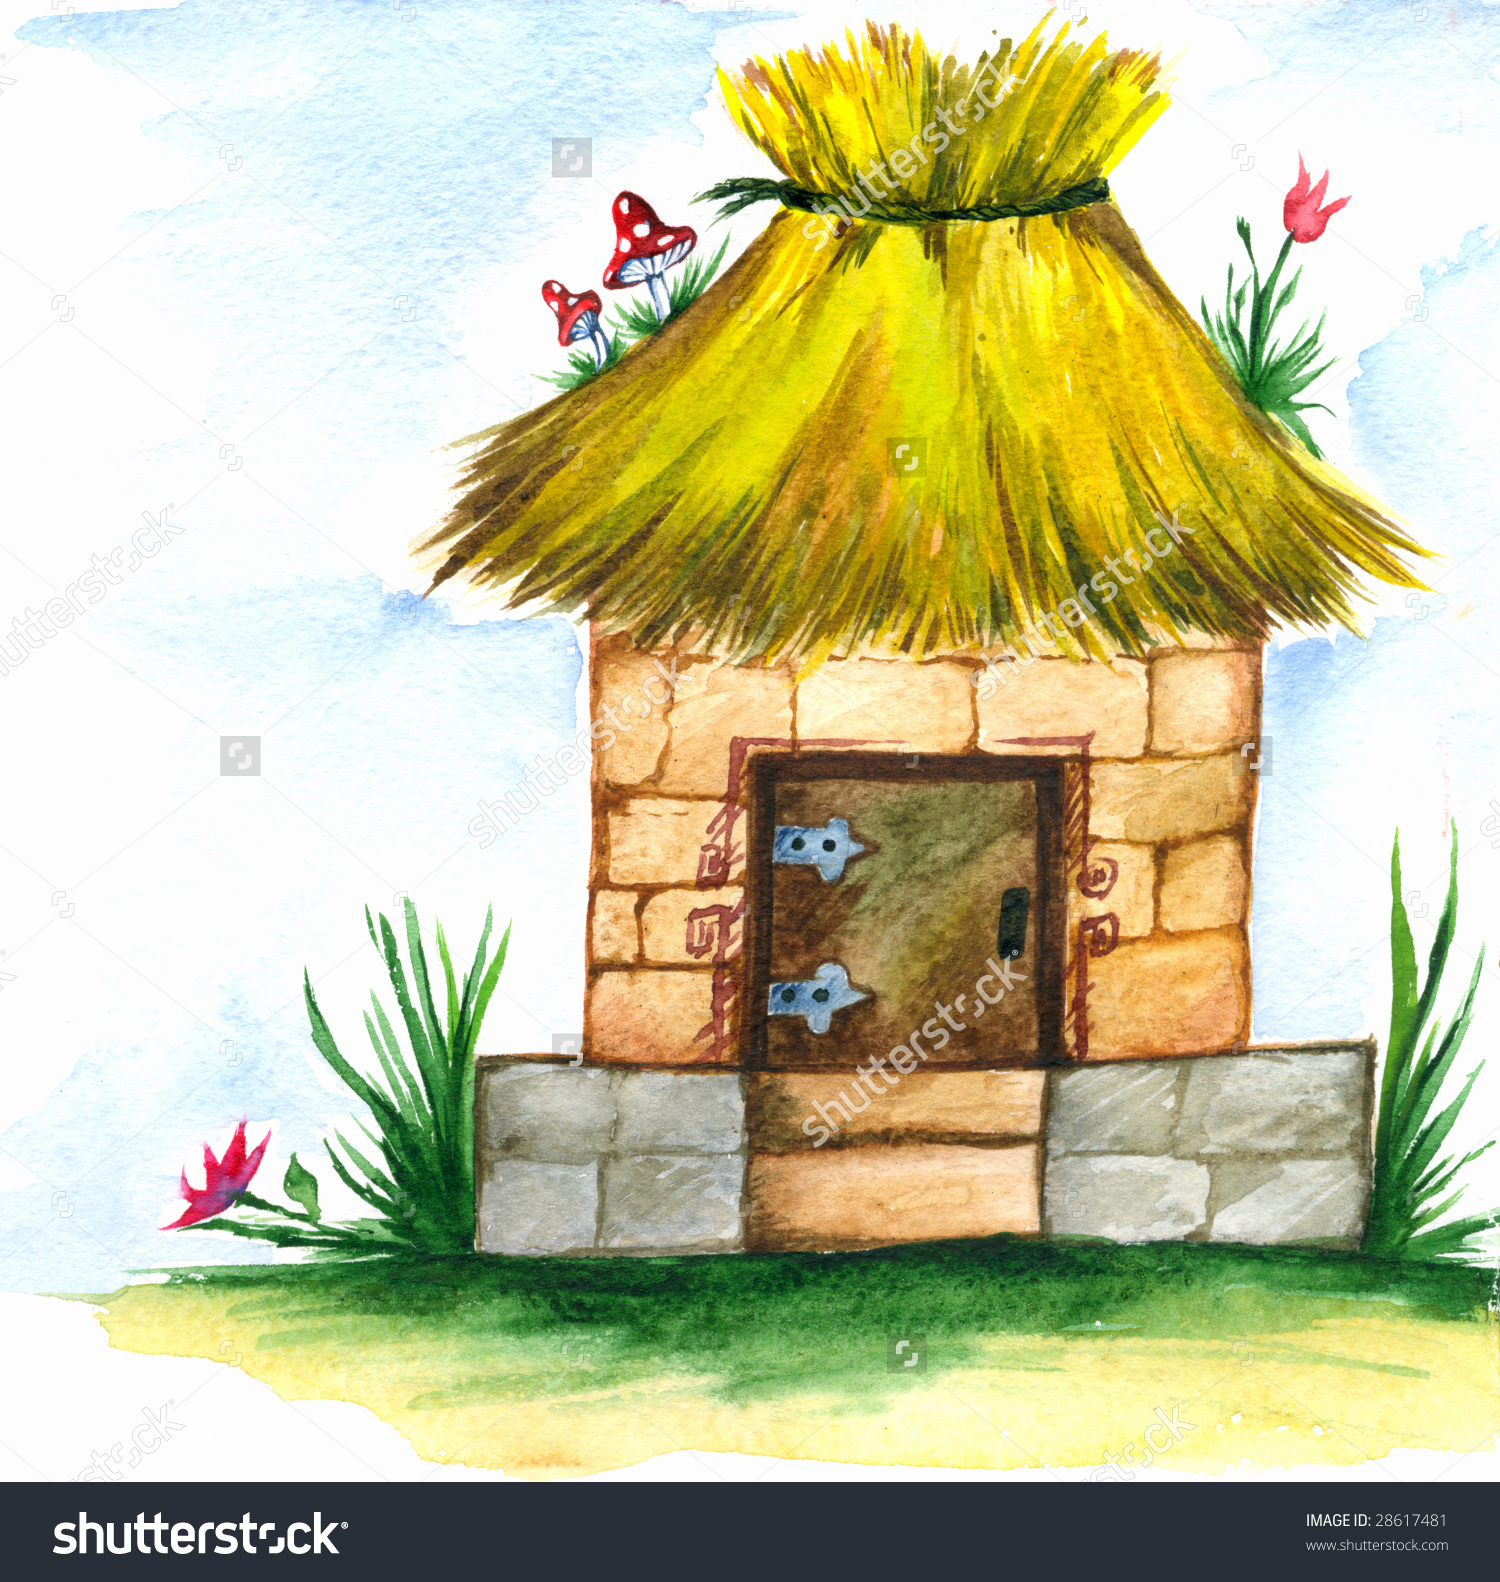 Drawing Small Home Made Brick Thatched Stock Illustration 28617481.